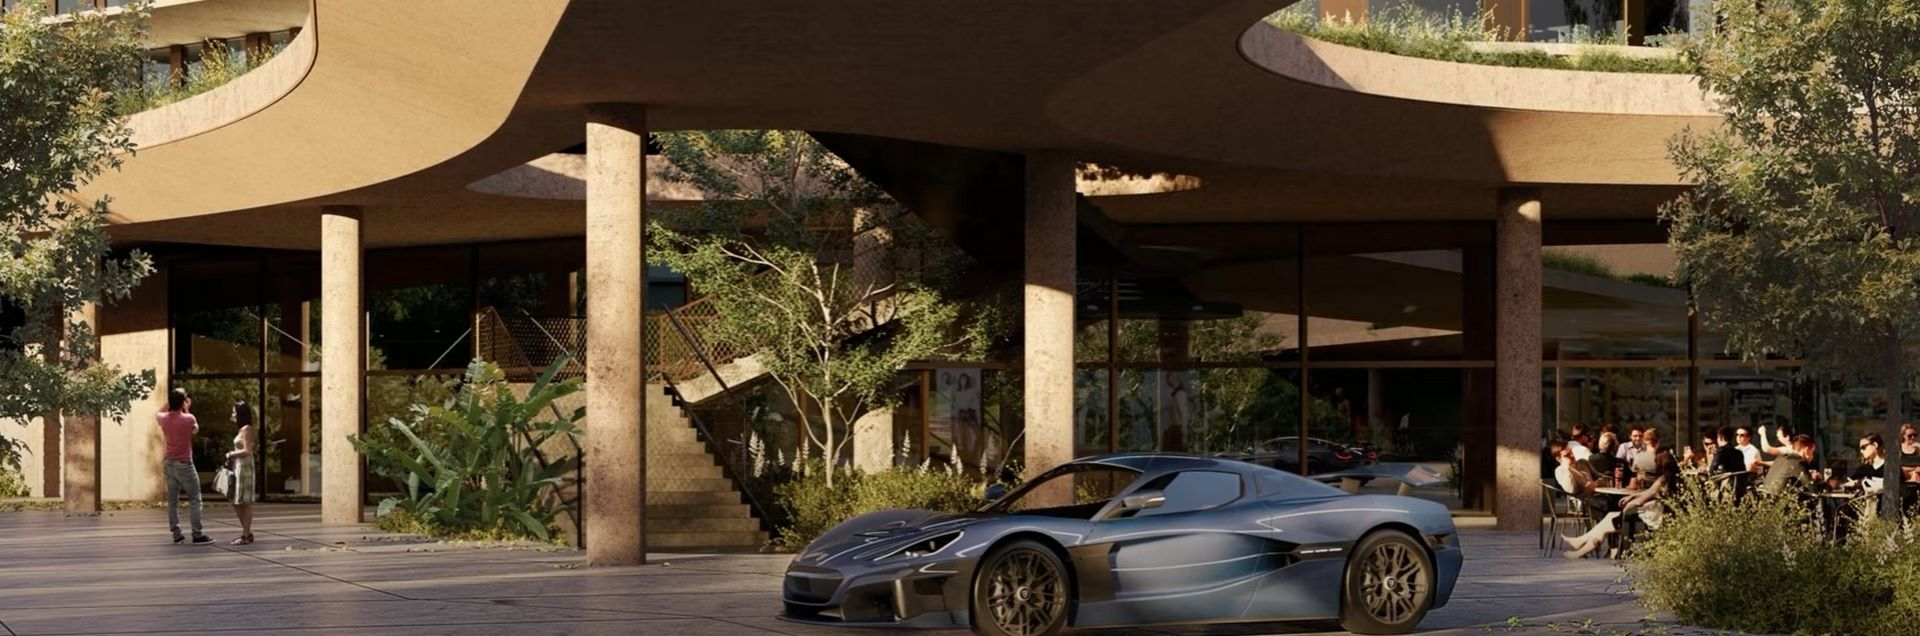 Rimac-headquarters-18